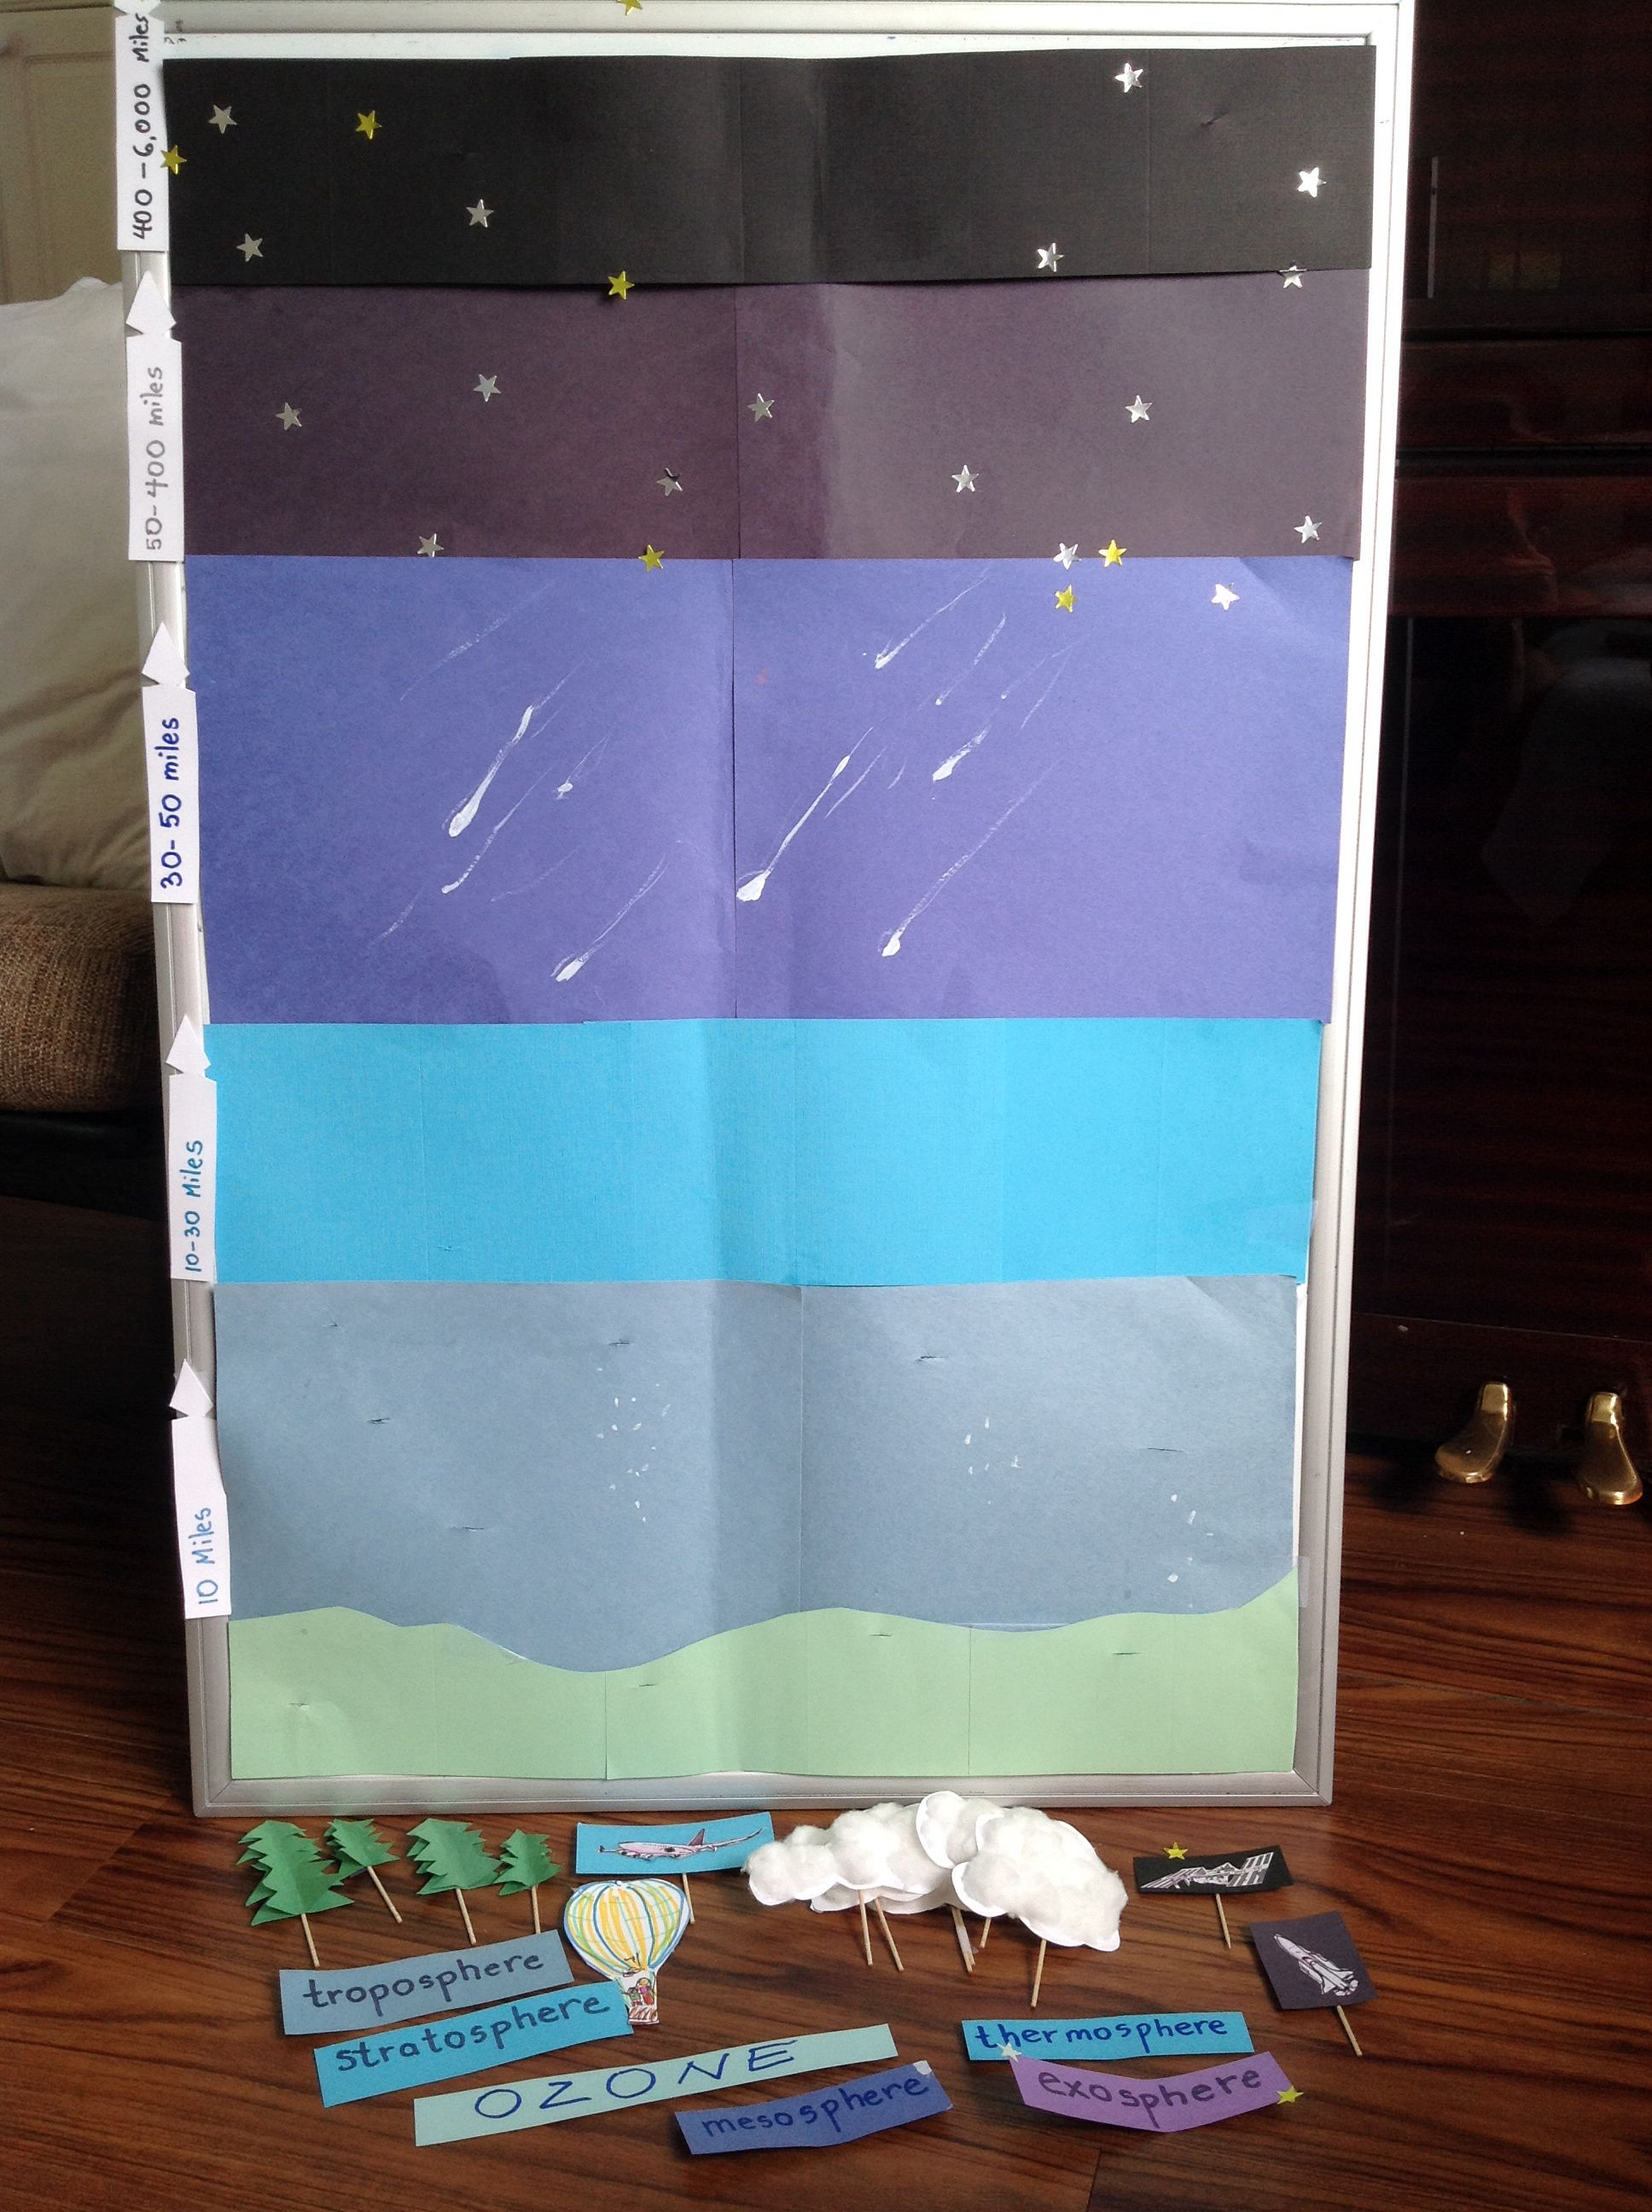 Layers Of Earths Atmosphere Interactive Board That Allows